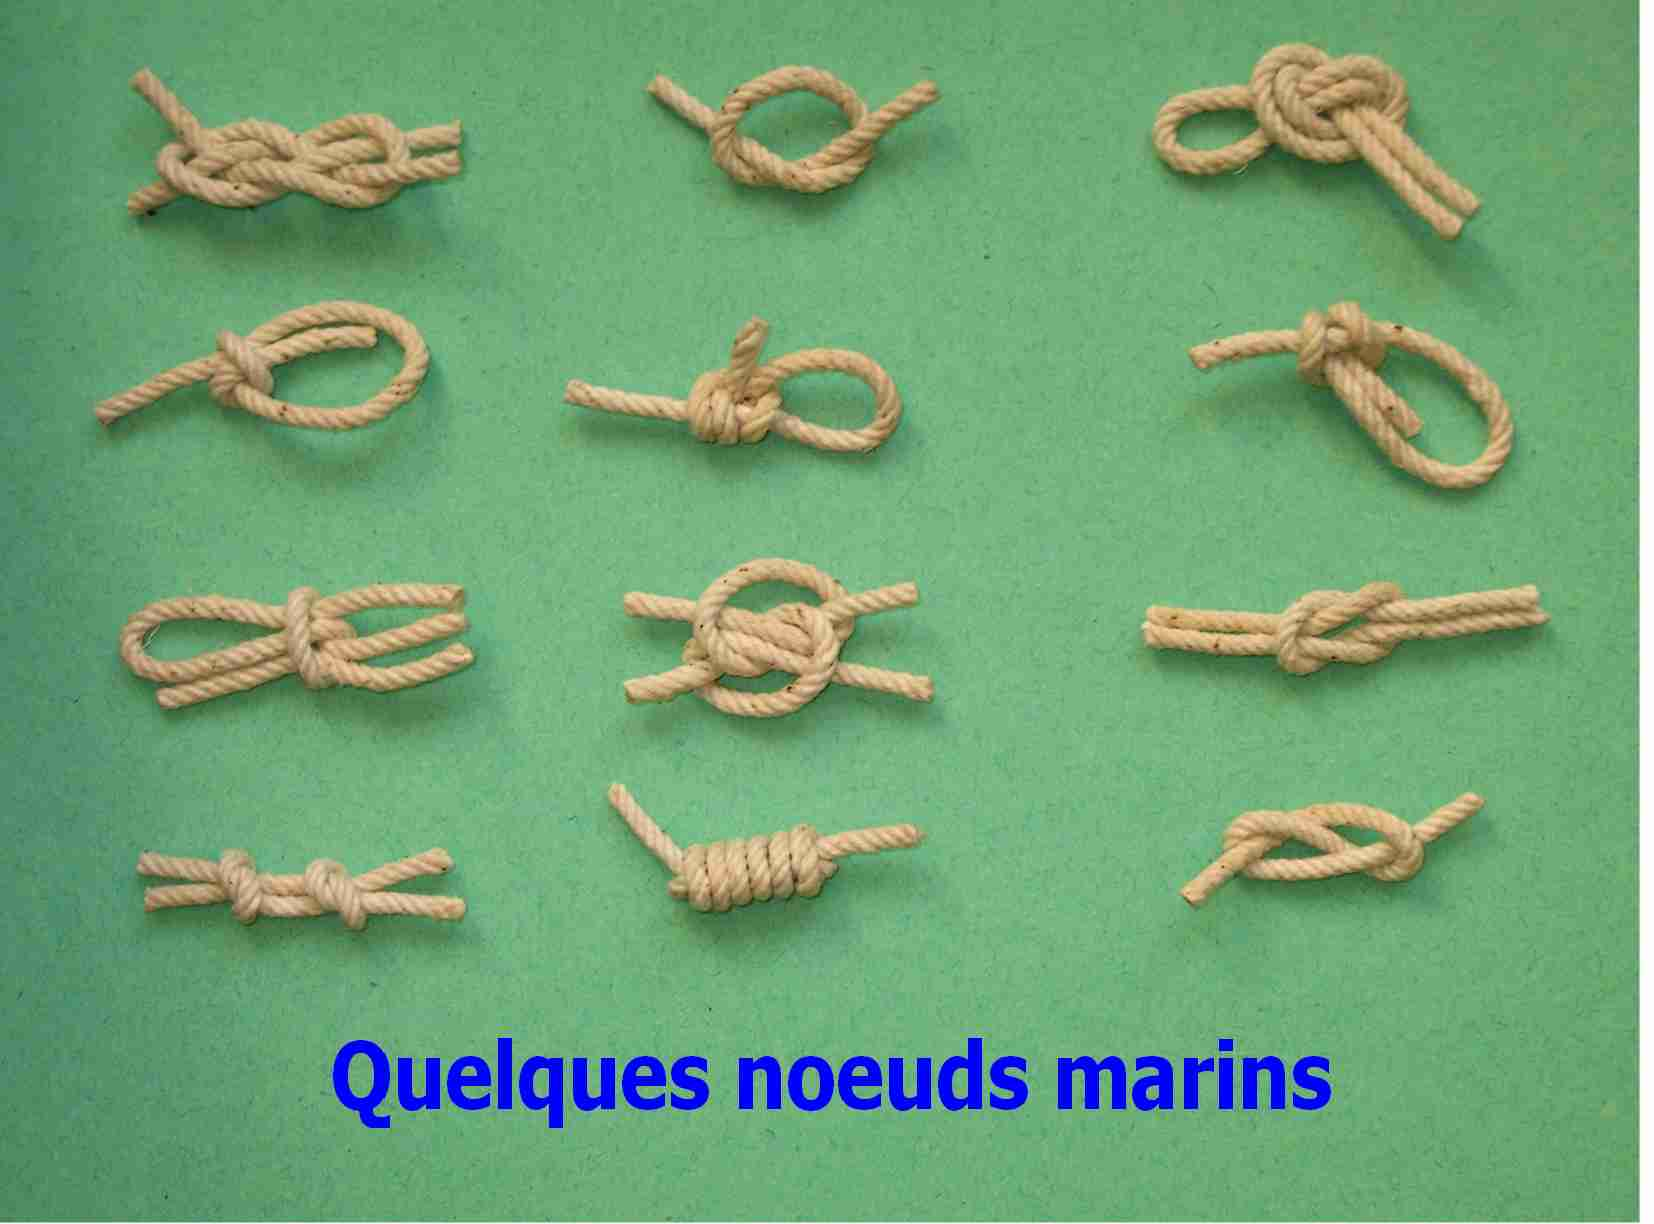 Noeuds marins d34aed436cb